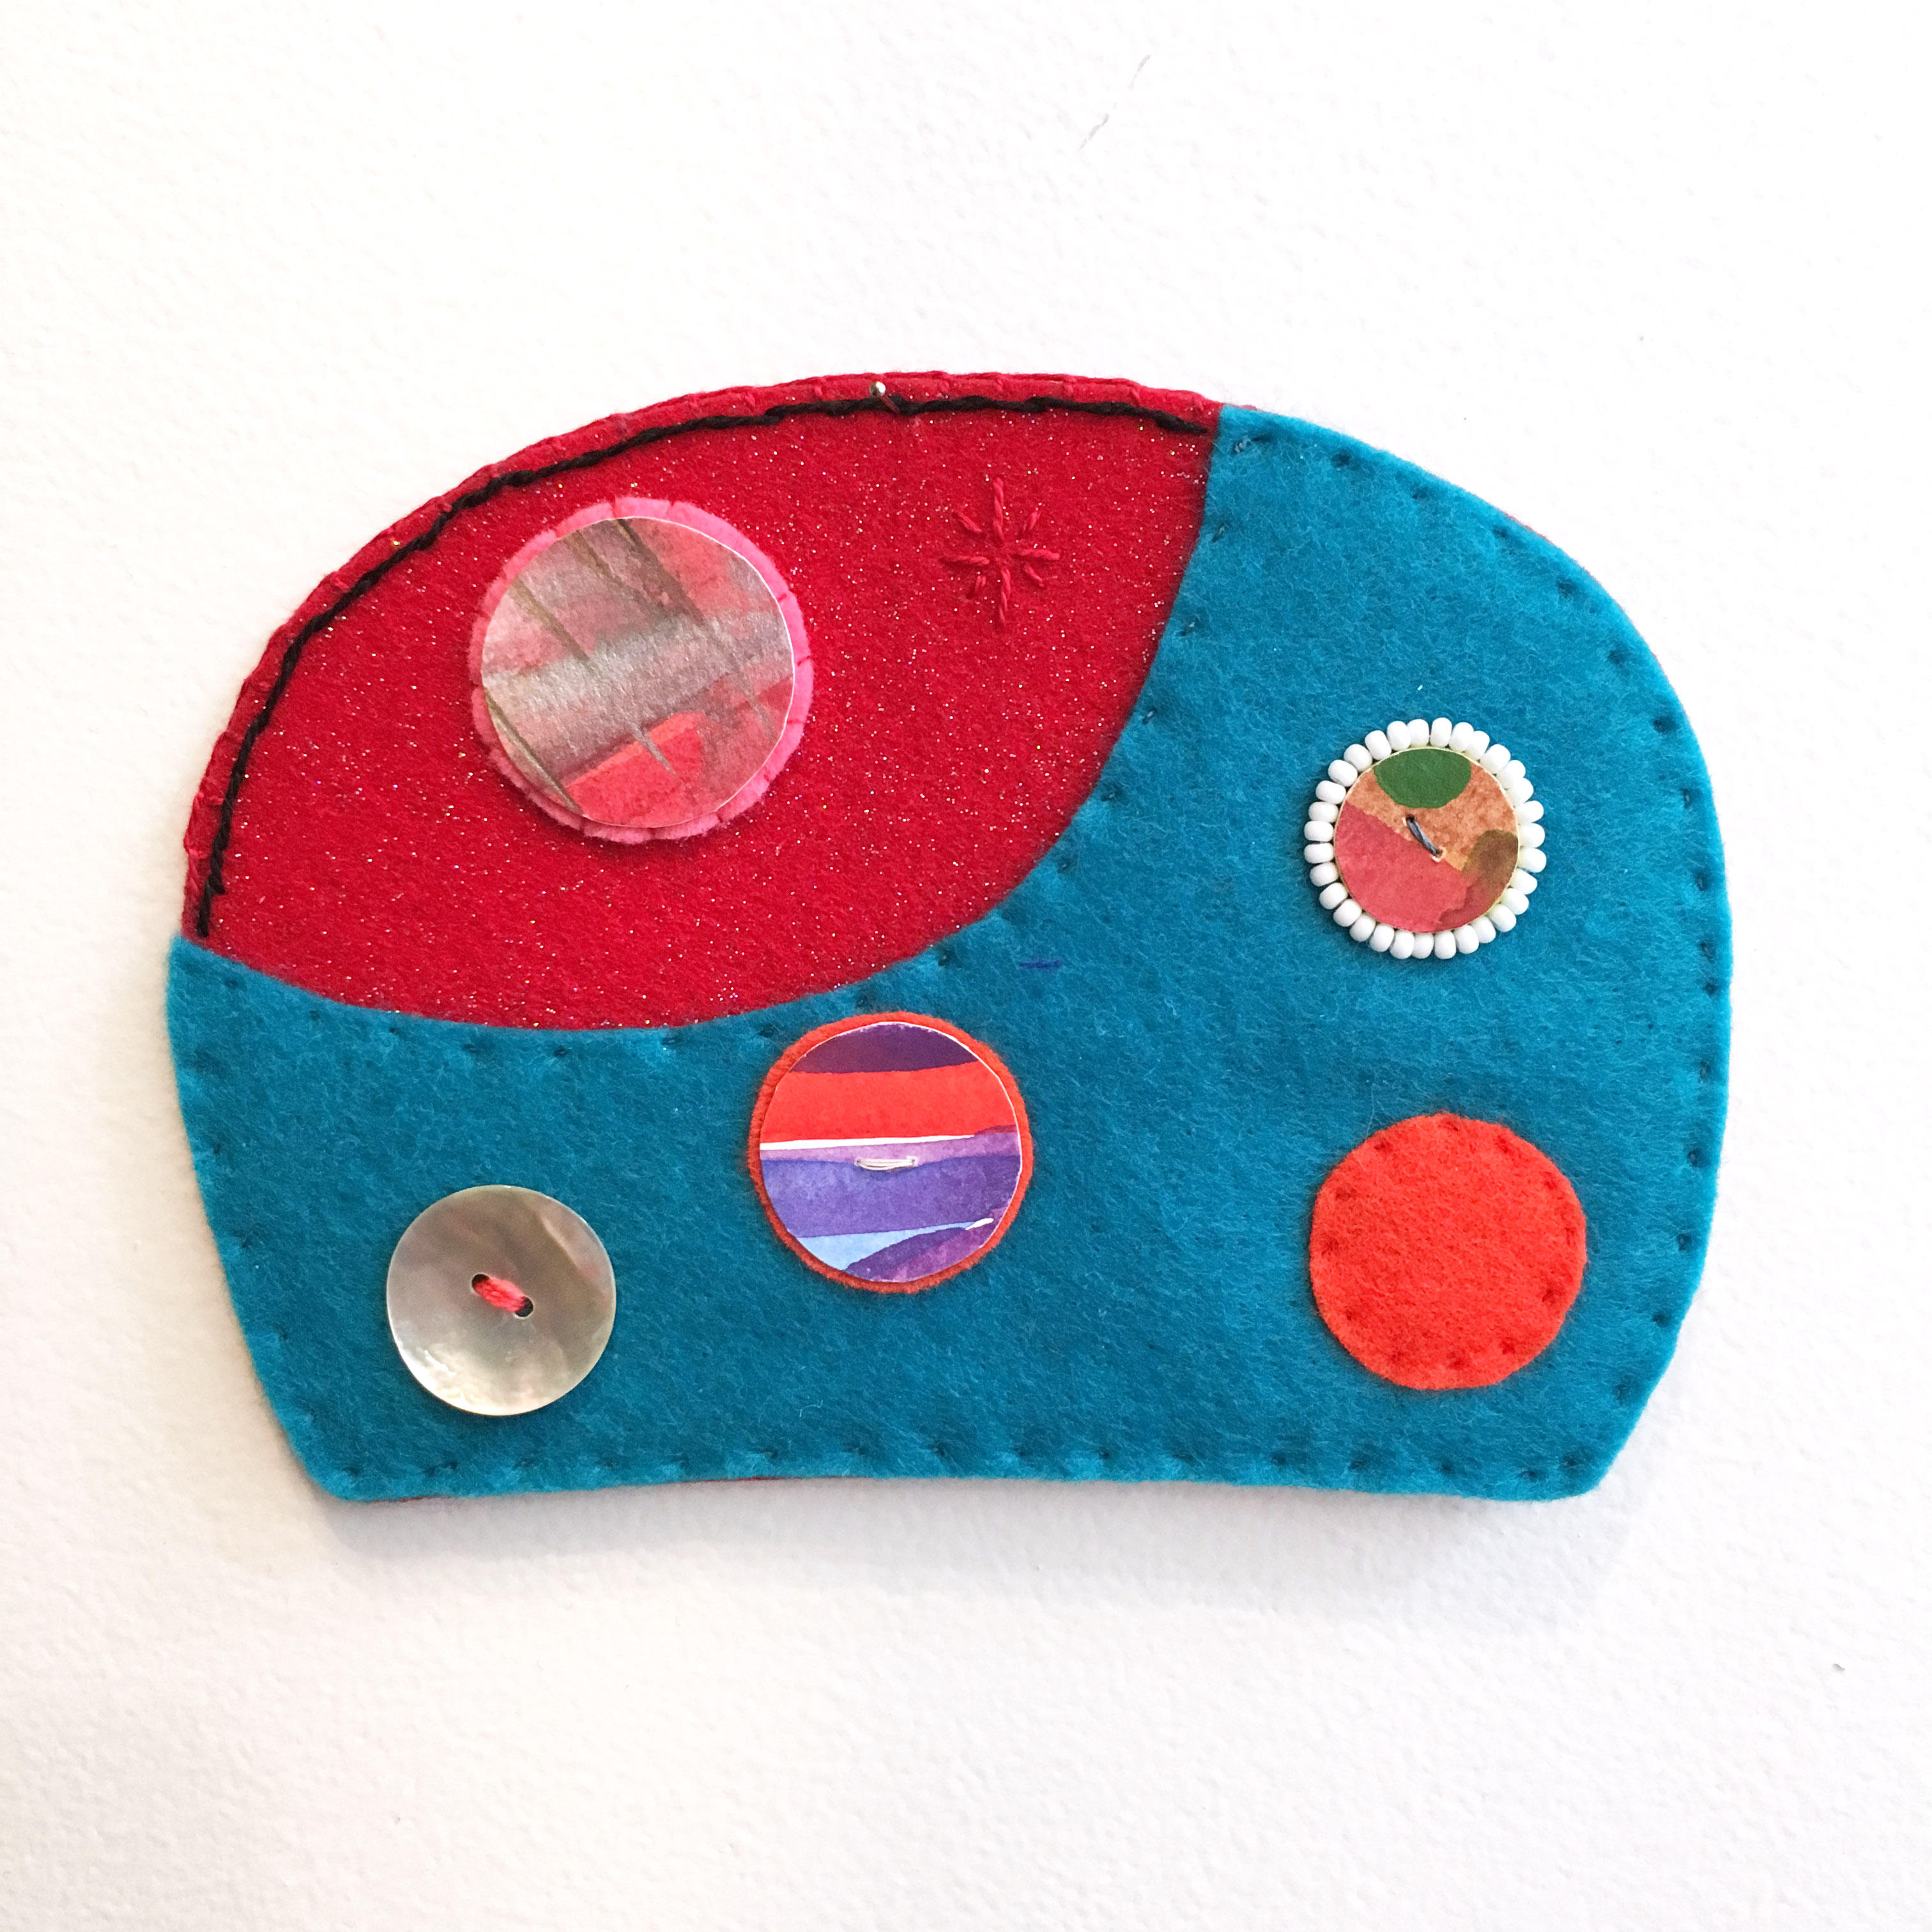 Ovoid Traces, Charlene Vickers (Anishinabe), Watercolour, paper, shell buttons, glass beads on felt with embroidery edges, $200